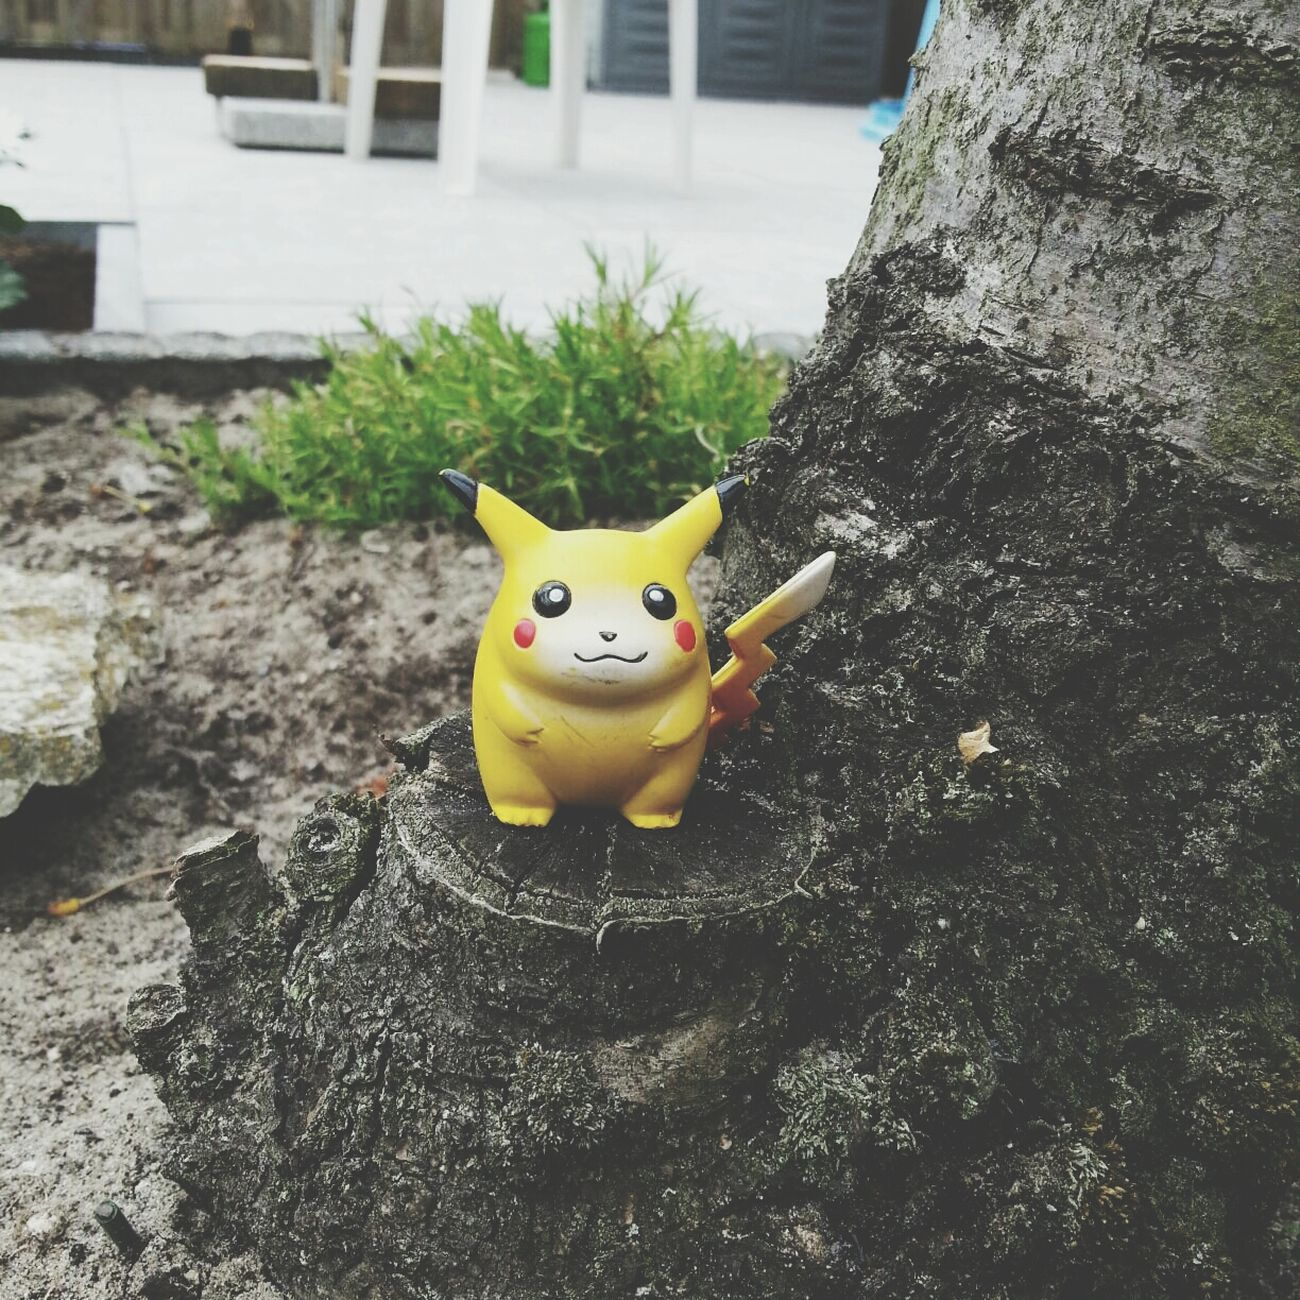 Guess who I've found in my backyard? First Eyeem Photo Pikachu Pokémon